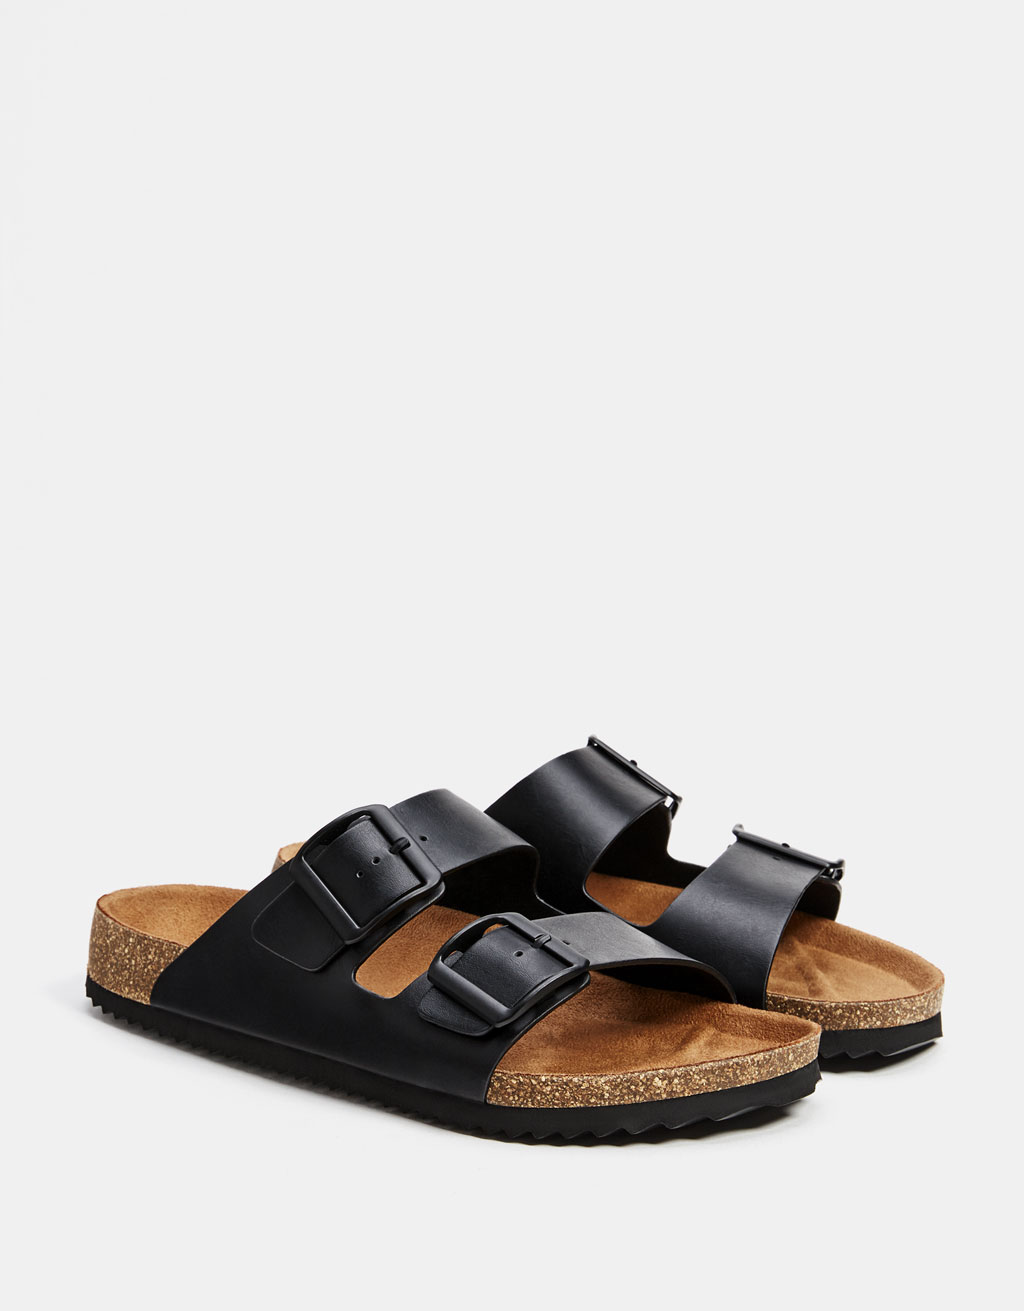 Men's buckled sandals